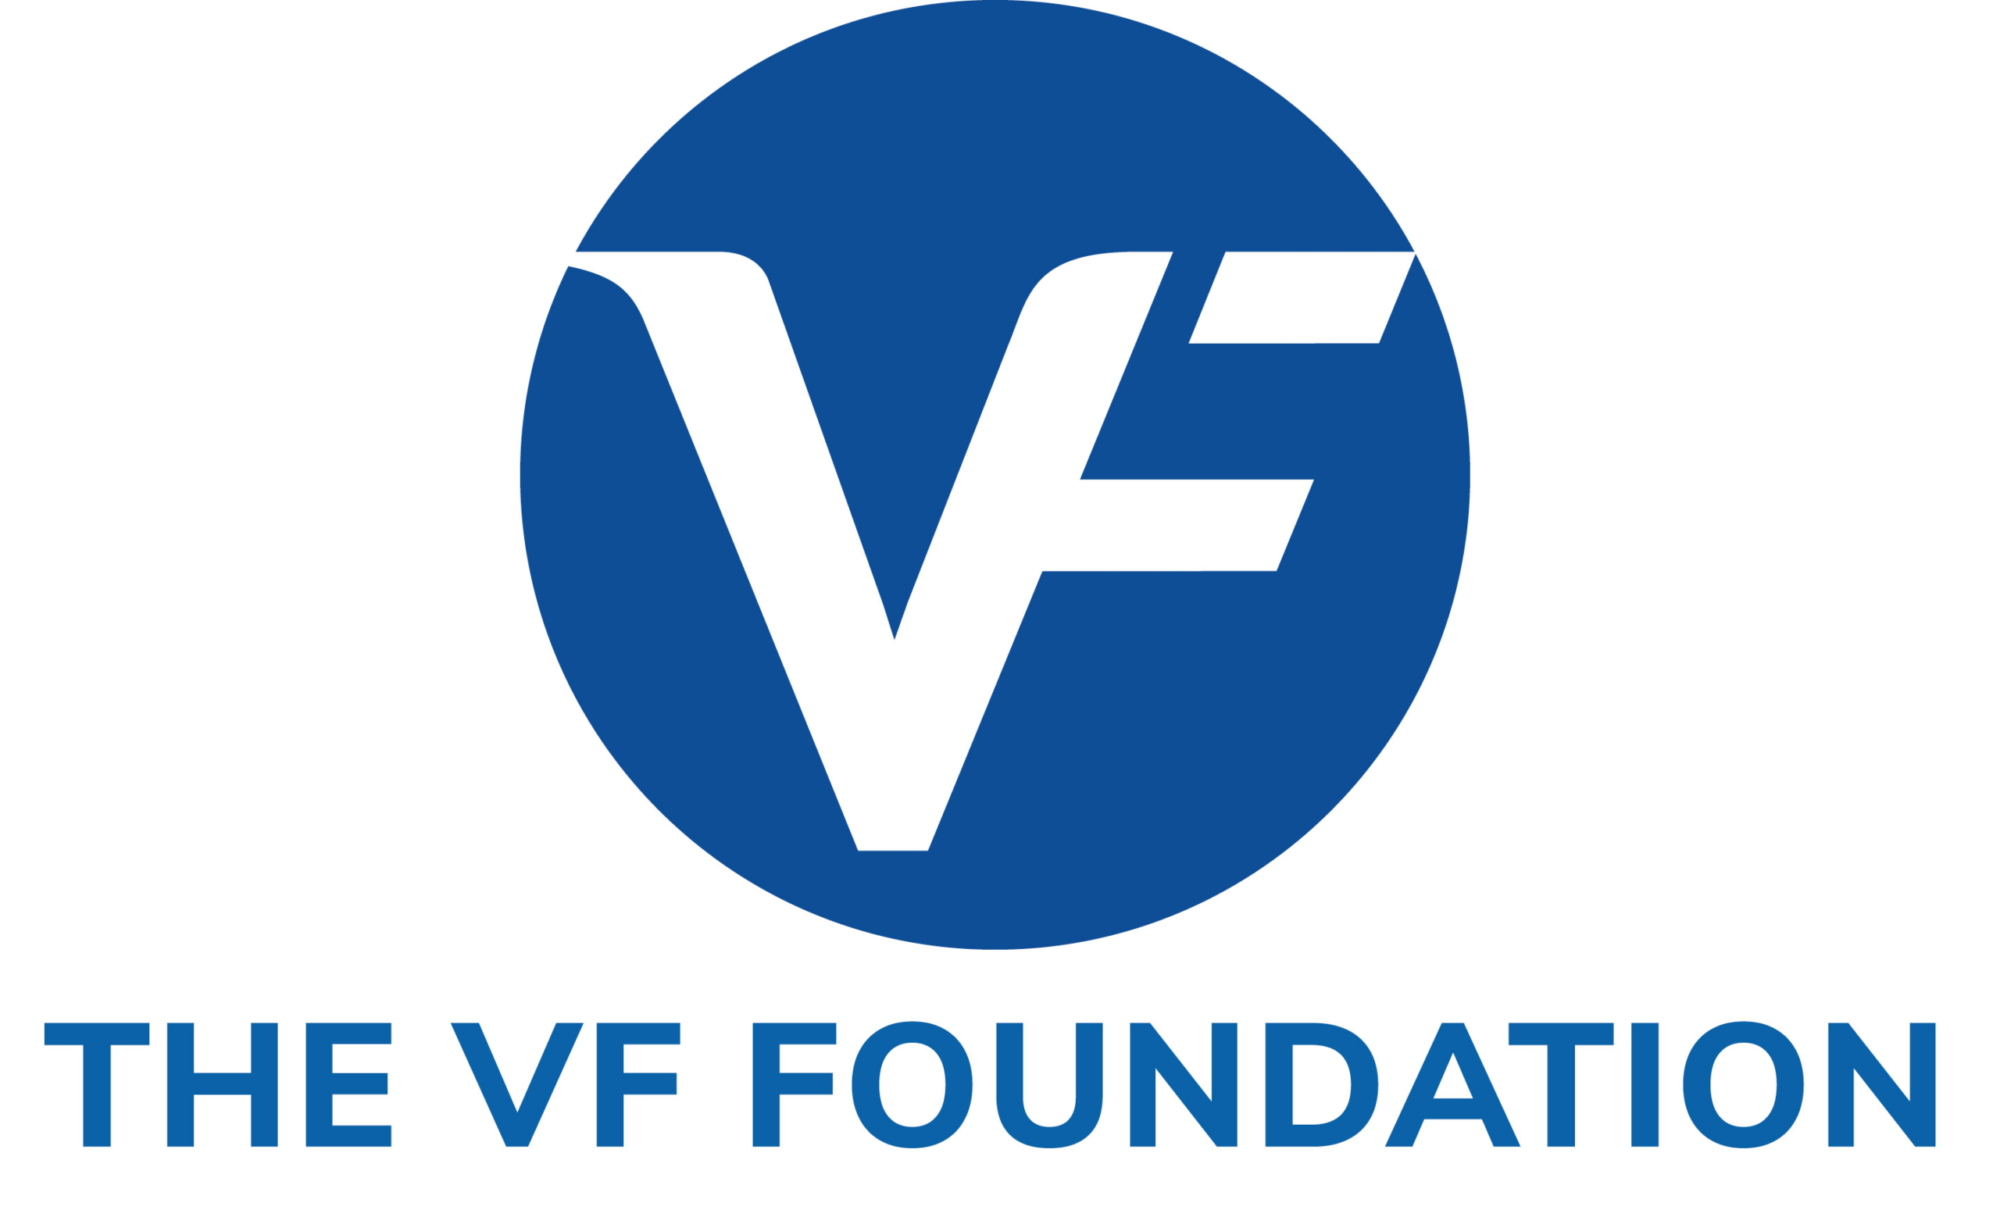 The VF Foundation logo. Blue circle with white VF.